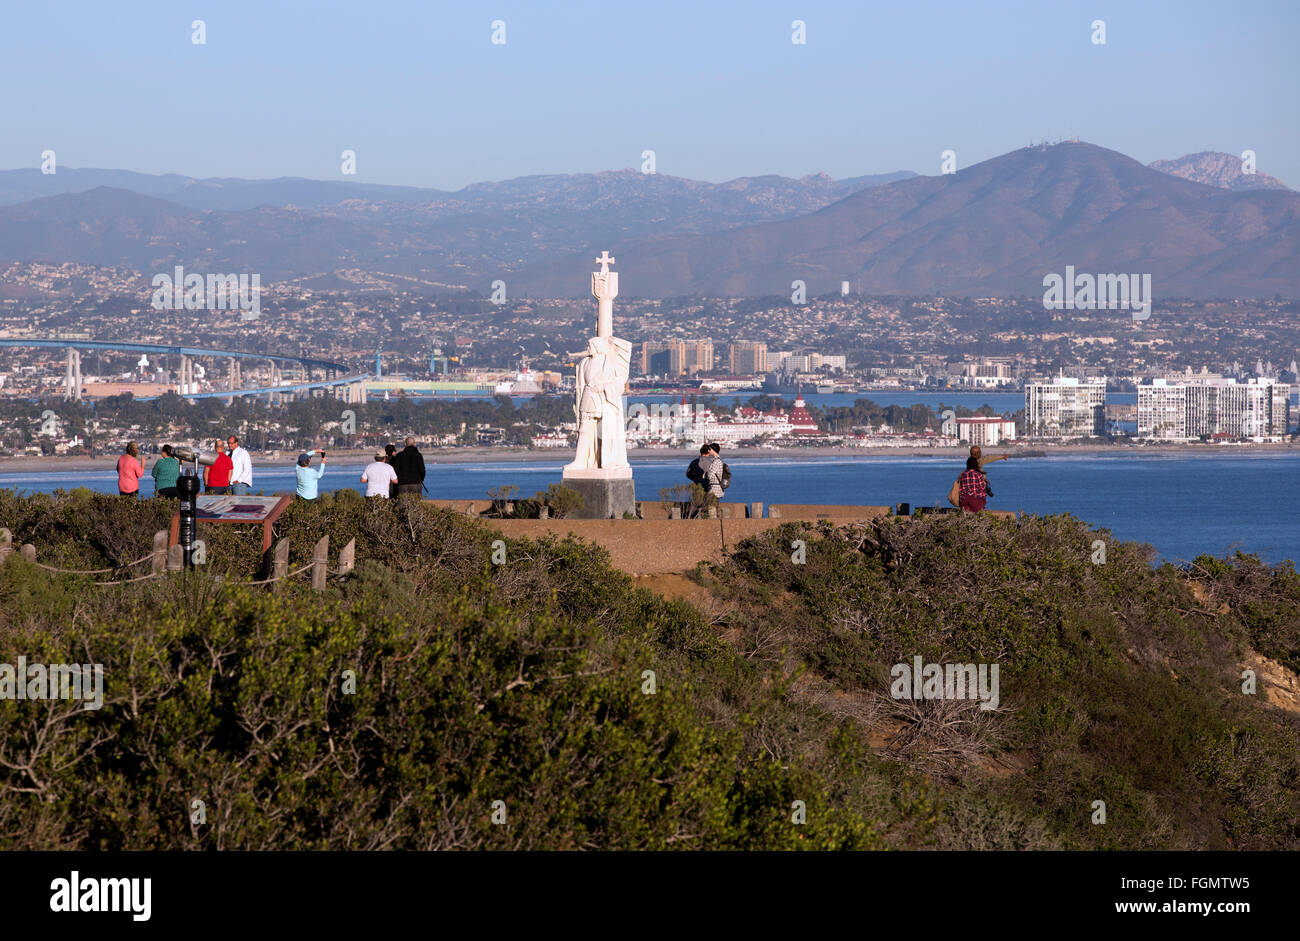 Cabrillo National Monument, Point Loma, California - Stock Image